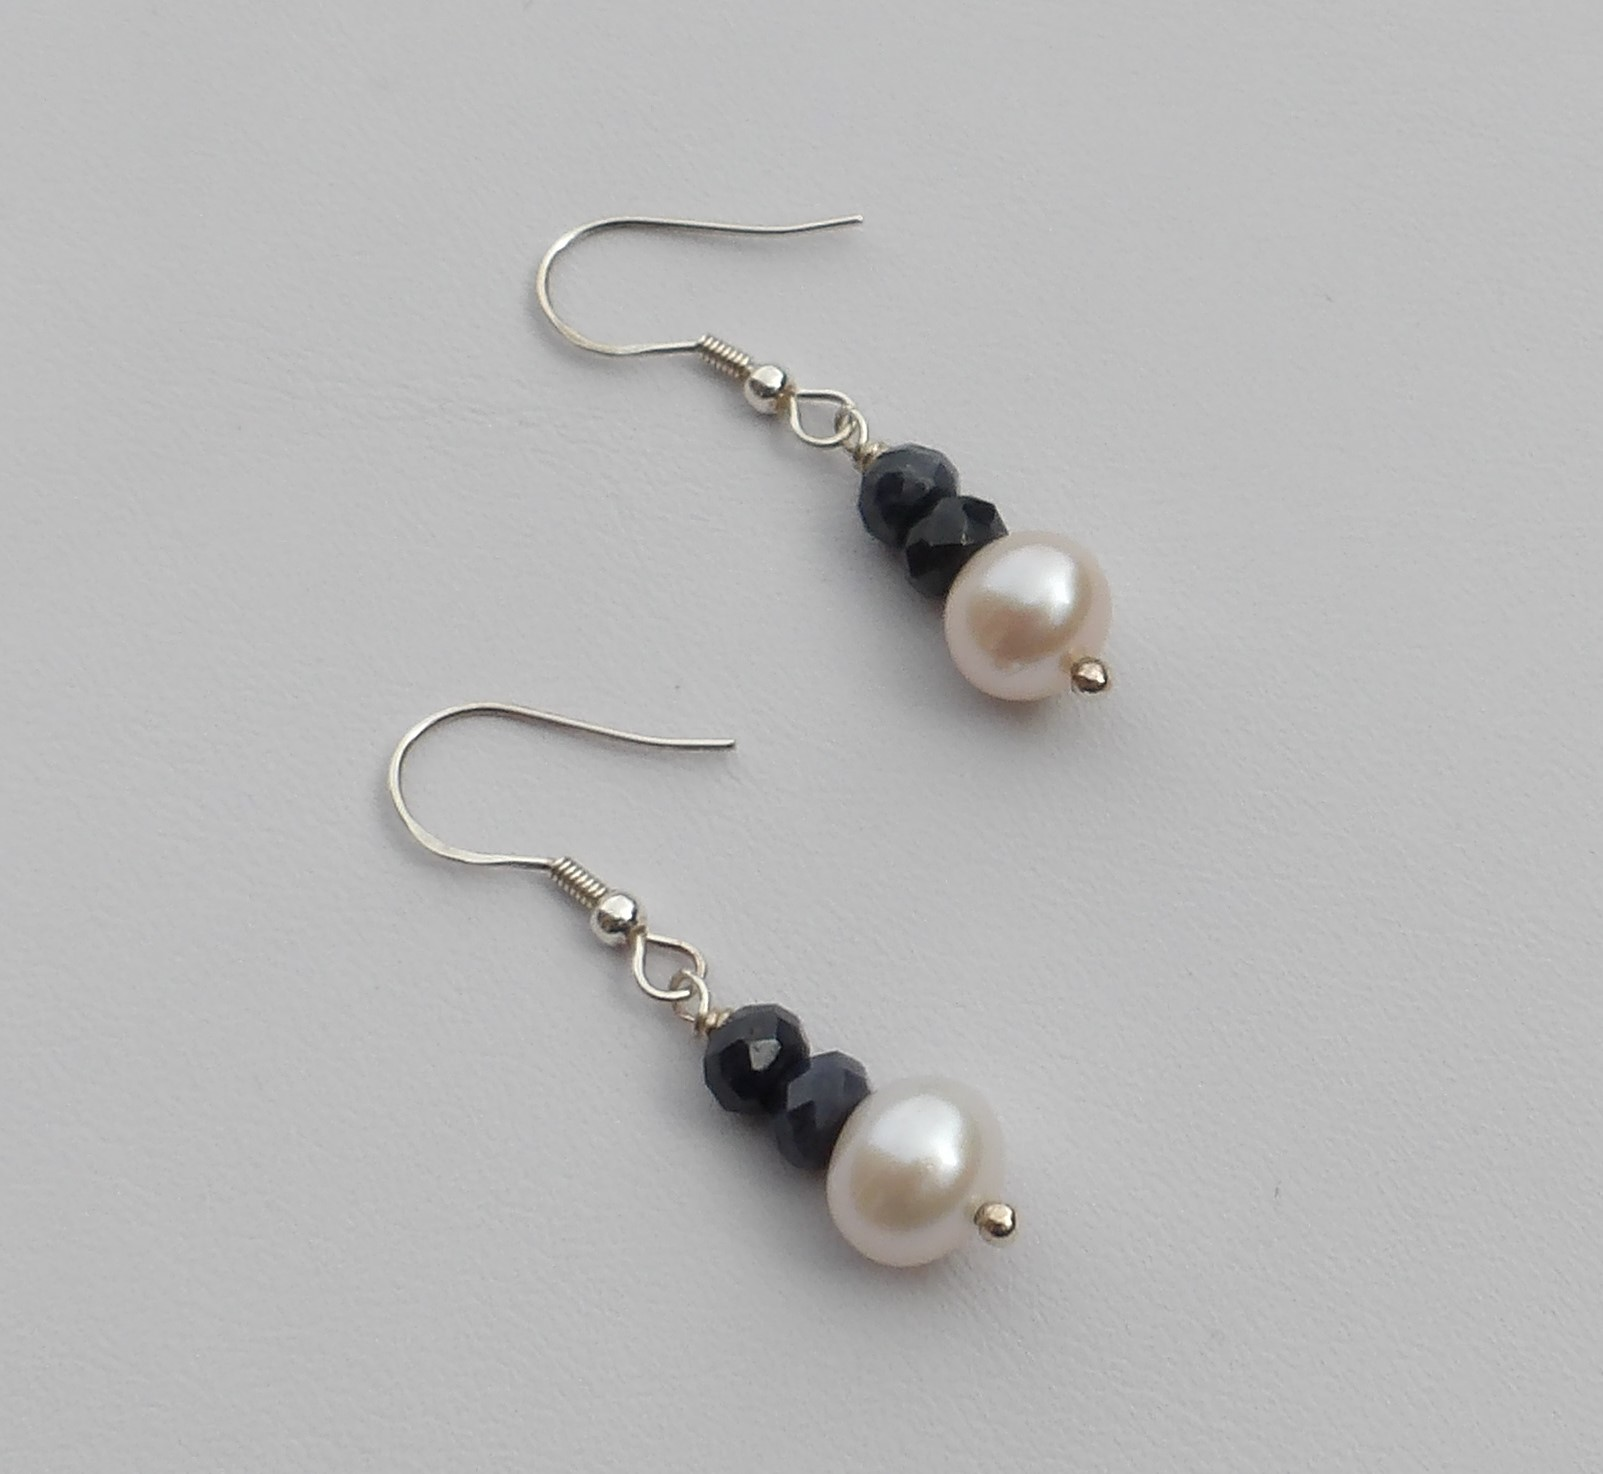 dona jewelry miller lp product earrings single artisan pearl